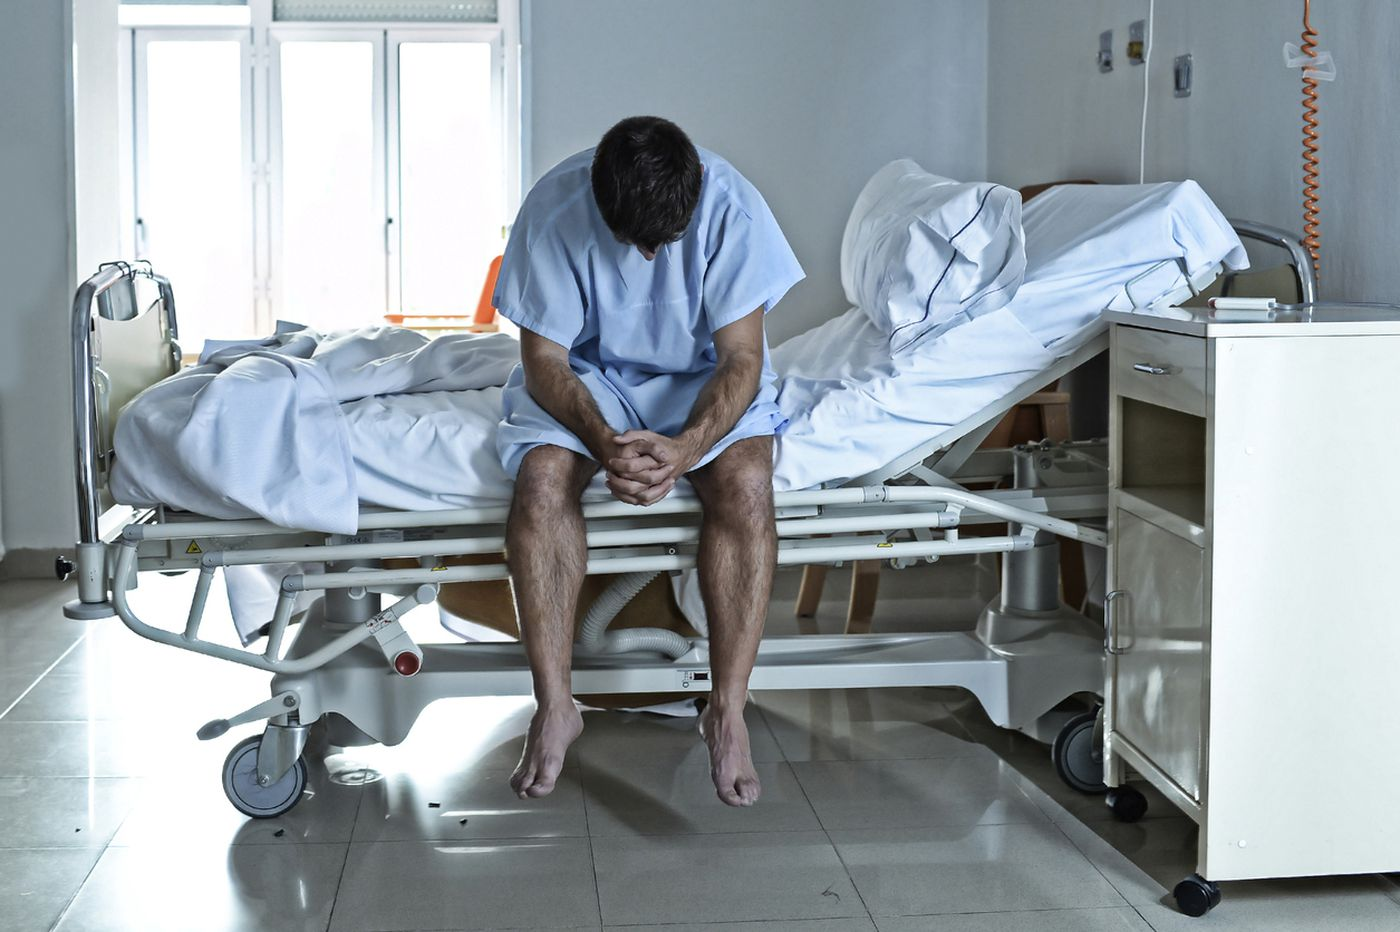 Medical Mystery: What caused a young man's confusion, headache and fever?